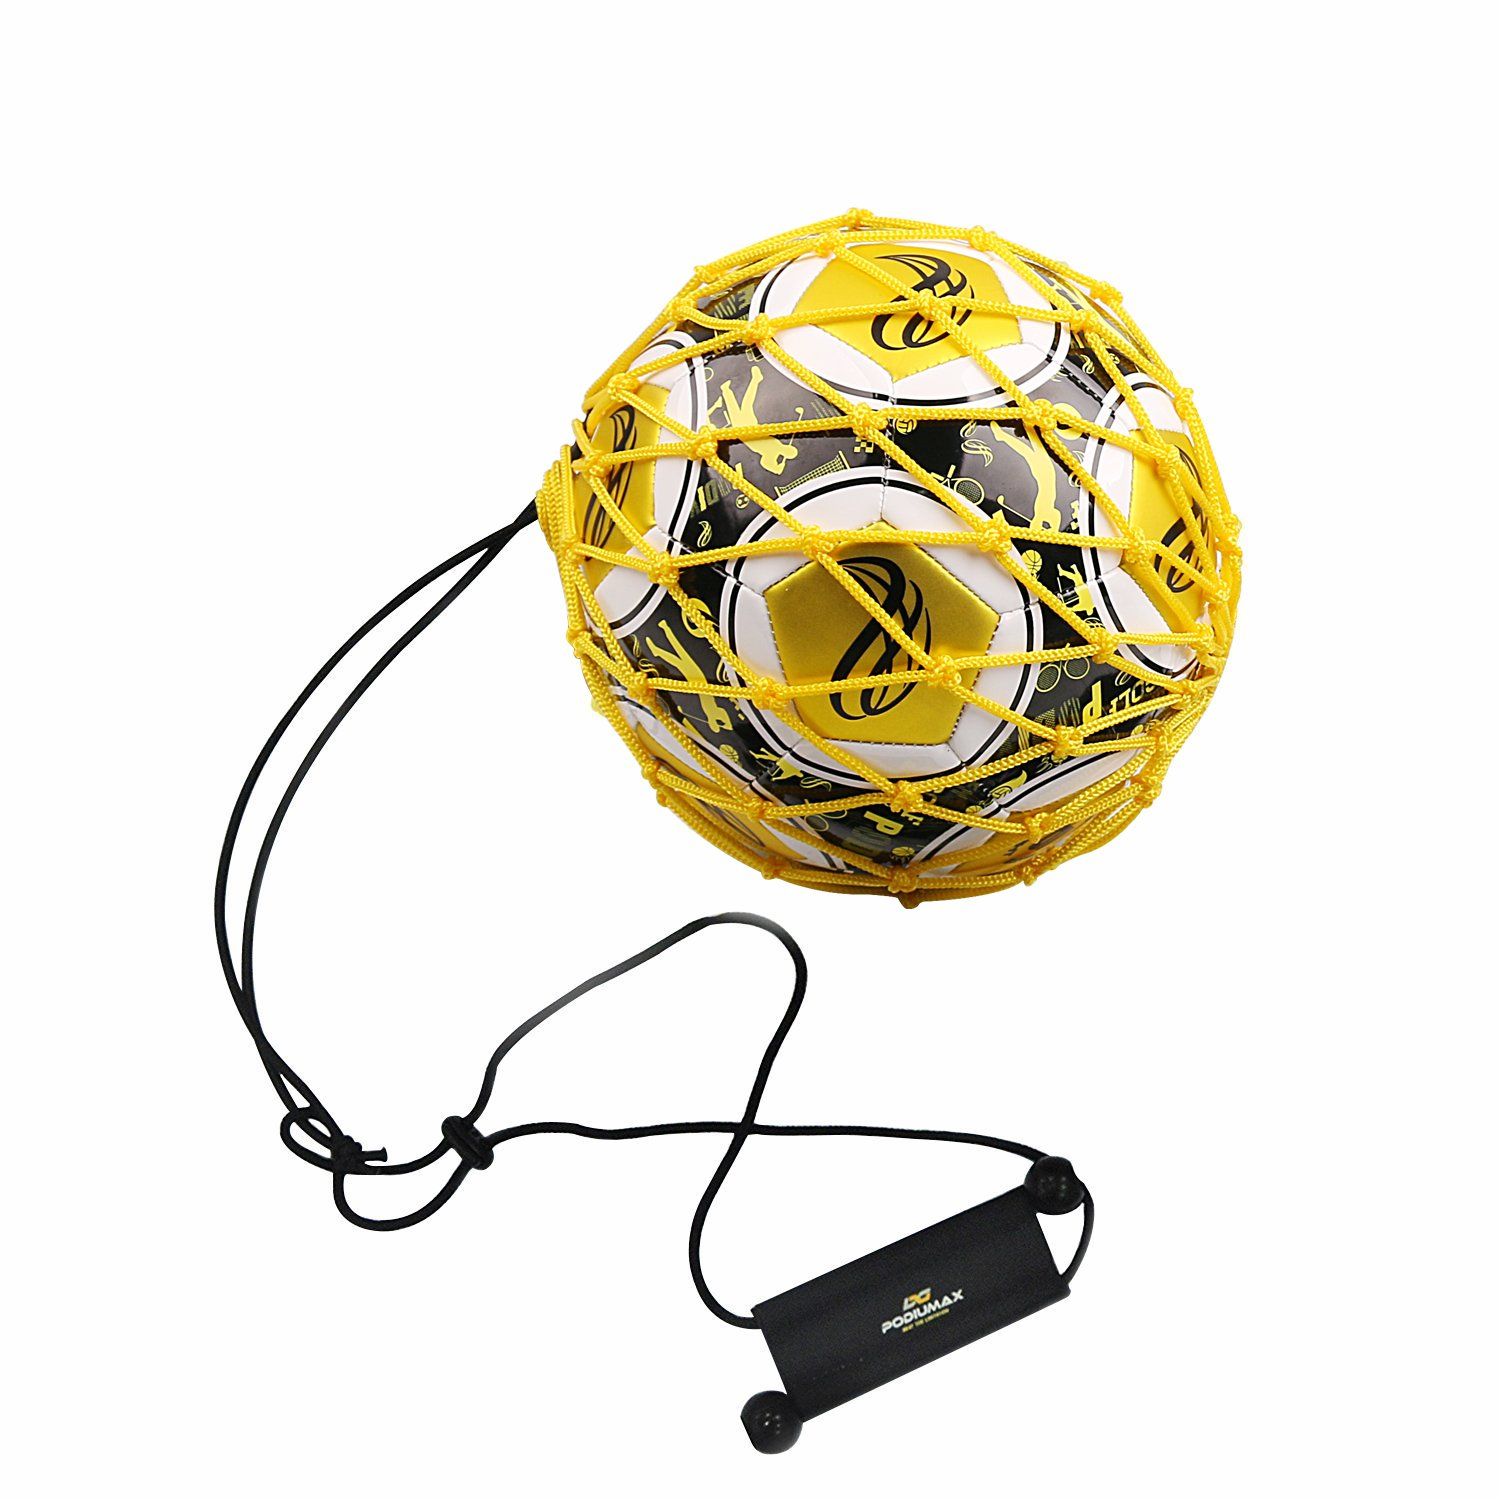 PodiuMax Handle Solo Soccer Kick Trainer with New Ball Locked Net Design, Soccer Ball Bungee Elastic Training Juggling Net (Fits Ball Size 3, 4, 5) PDMS2016040